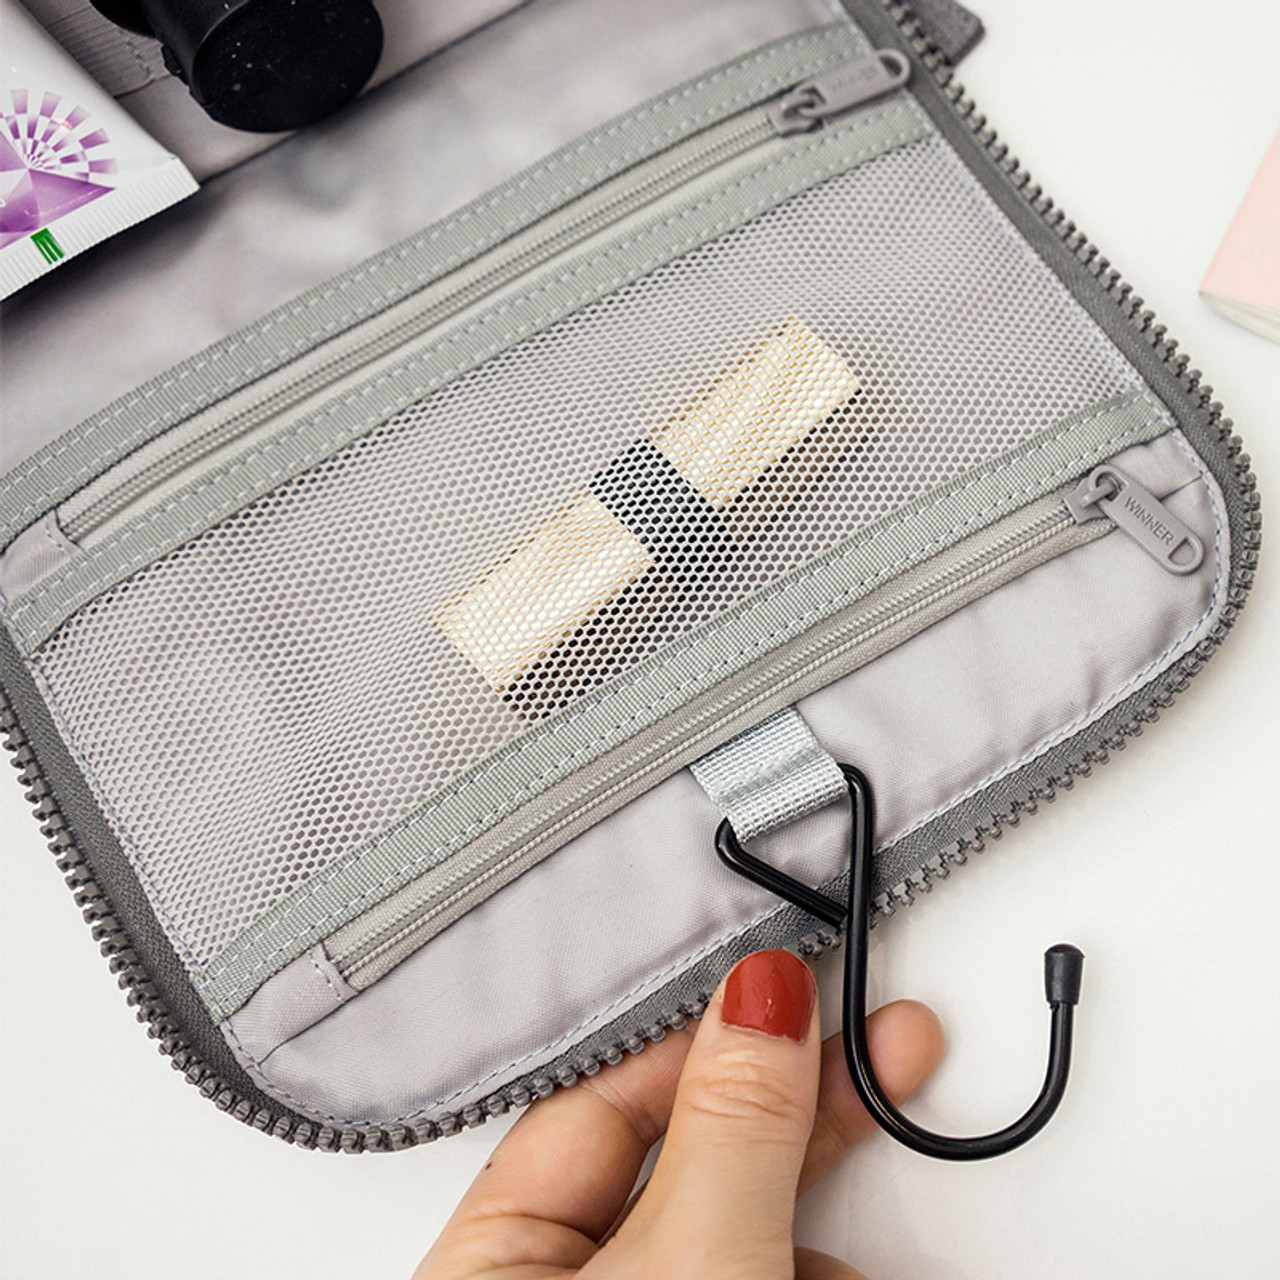 4960fc3533d3 ... Samplaner Waterproof Cosmetic Bags for Men Women Travel Makeup Bags  Washing Toiletry Kits Solid Storage Bag ...